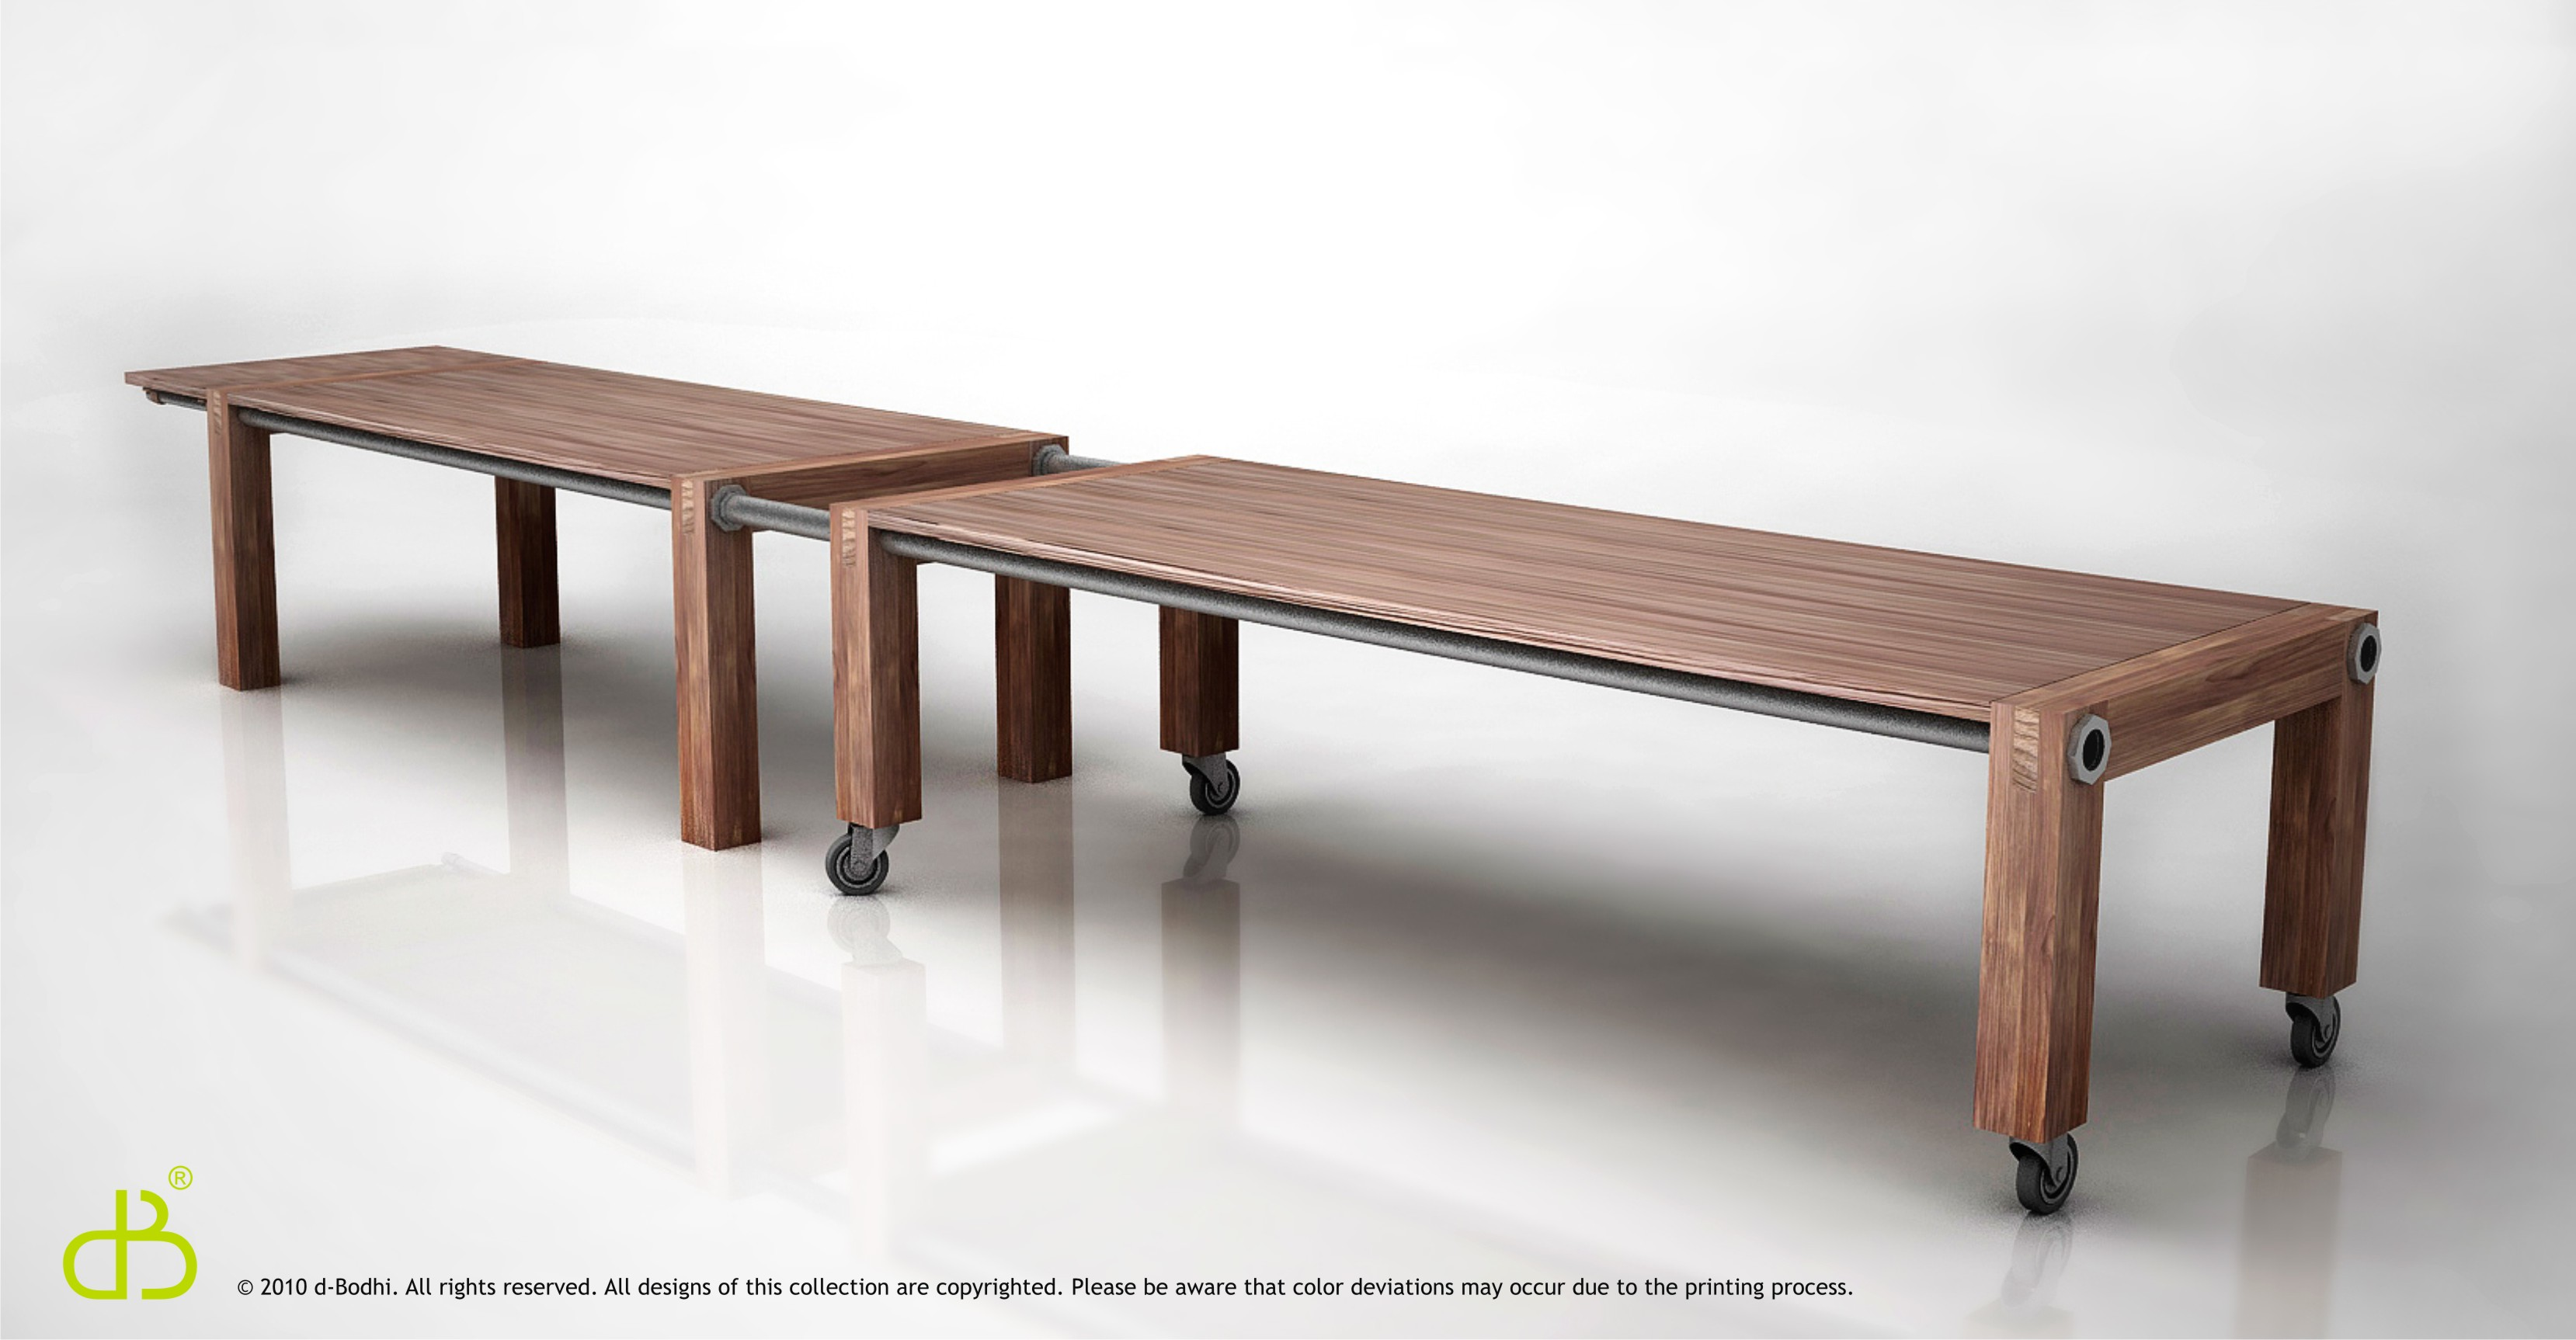 d Bodhi Sparks New Eco Furniture Industrial Revolution by